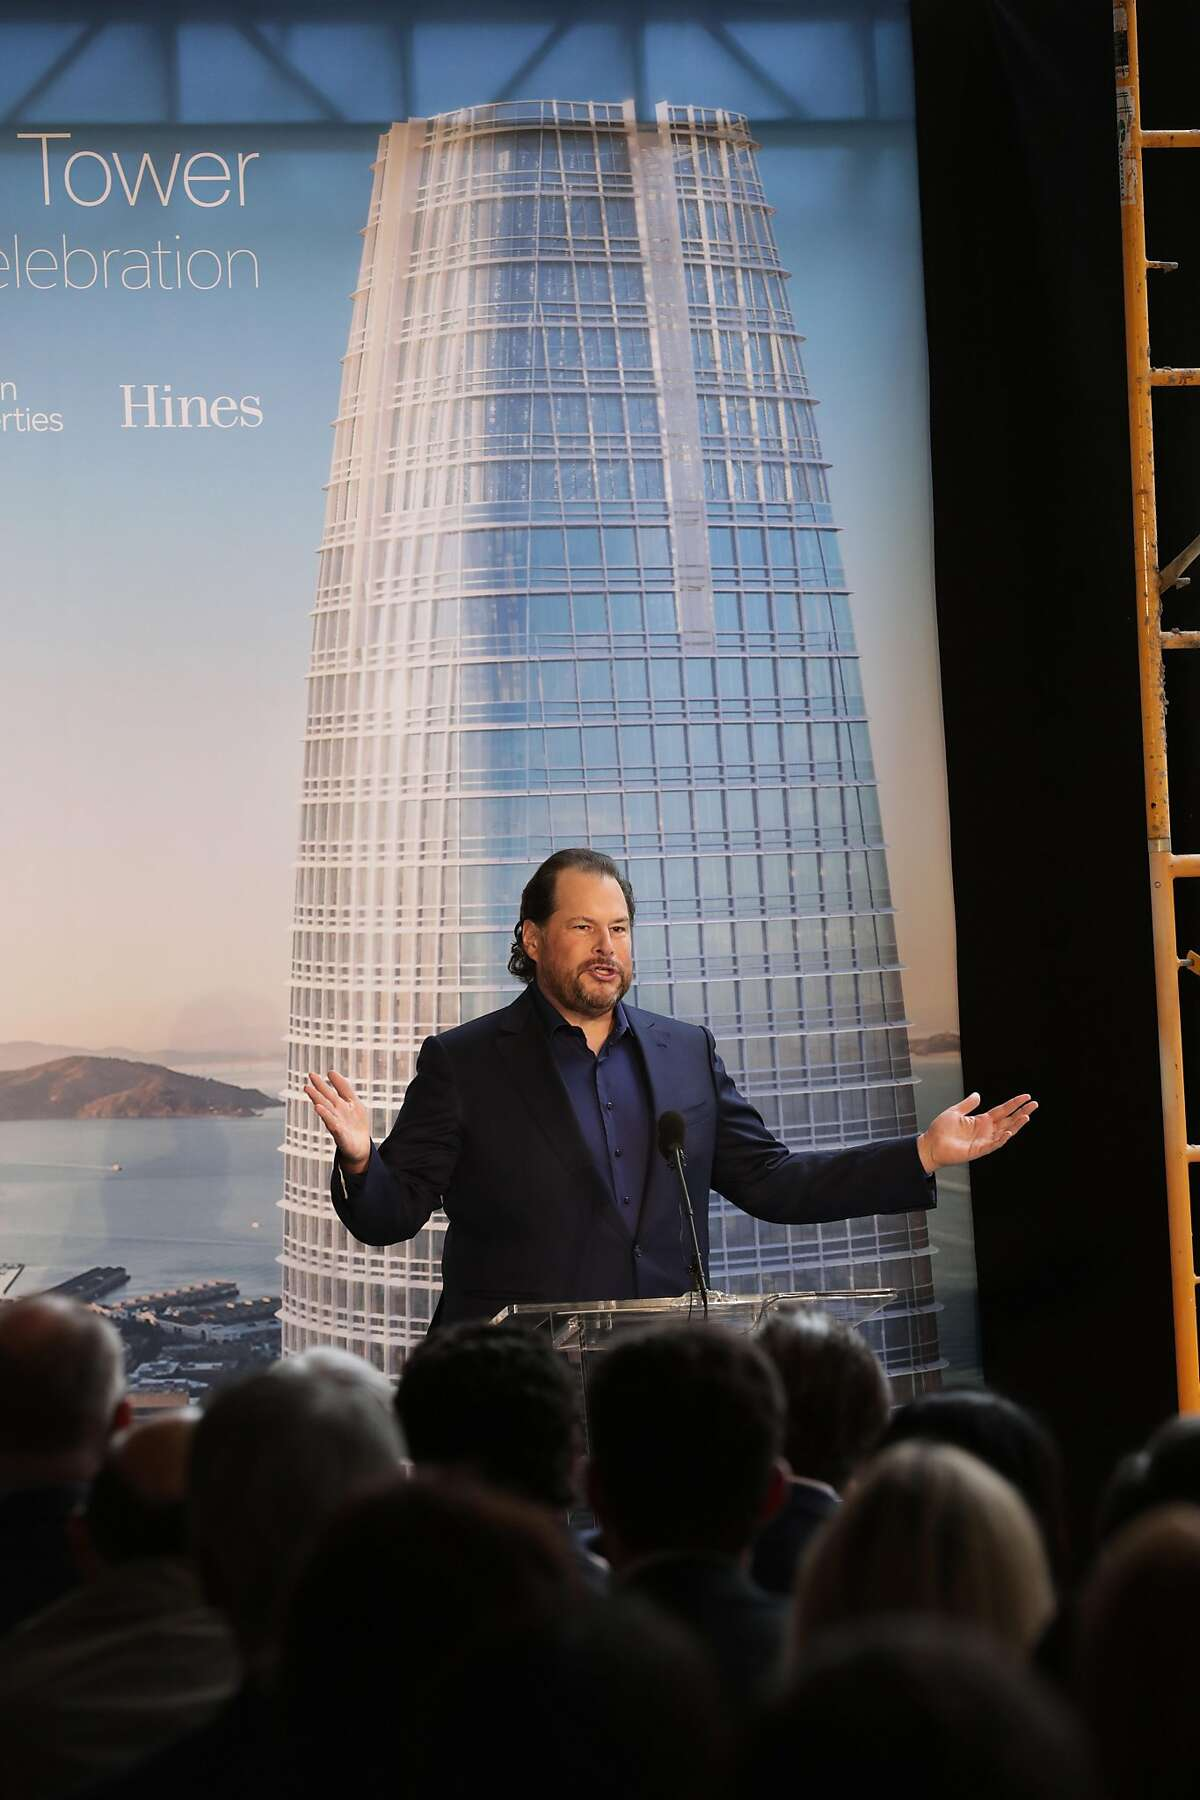 Marc Benioff, sCEO of Salesforce speaks to the gathering during a topping off ceremony as the final steel beam is being set to be moved into position on the Salesforce Tower in downtown San Francisco, Ca. on Thurs. April 6 2017.